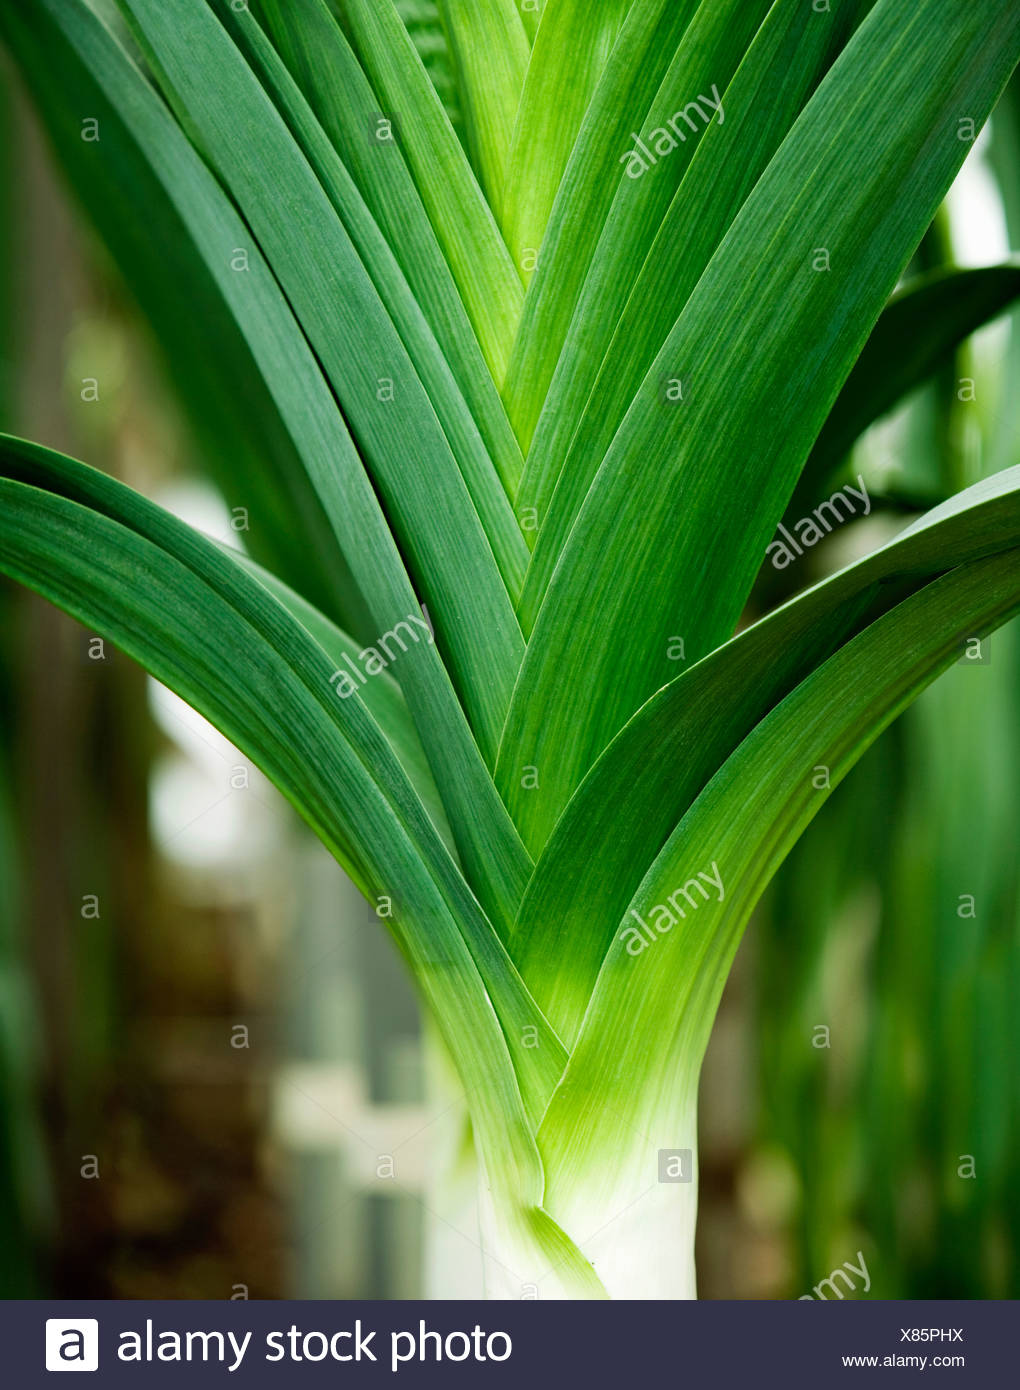 A portrait of a leek - Stock Image